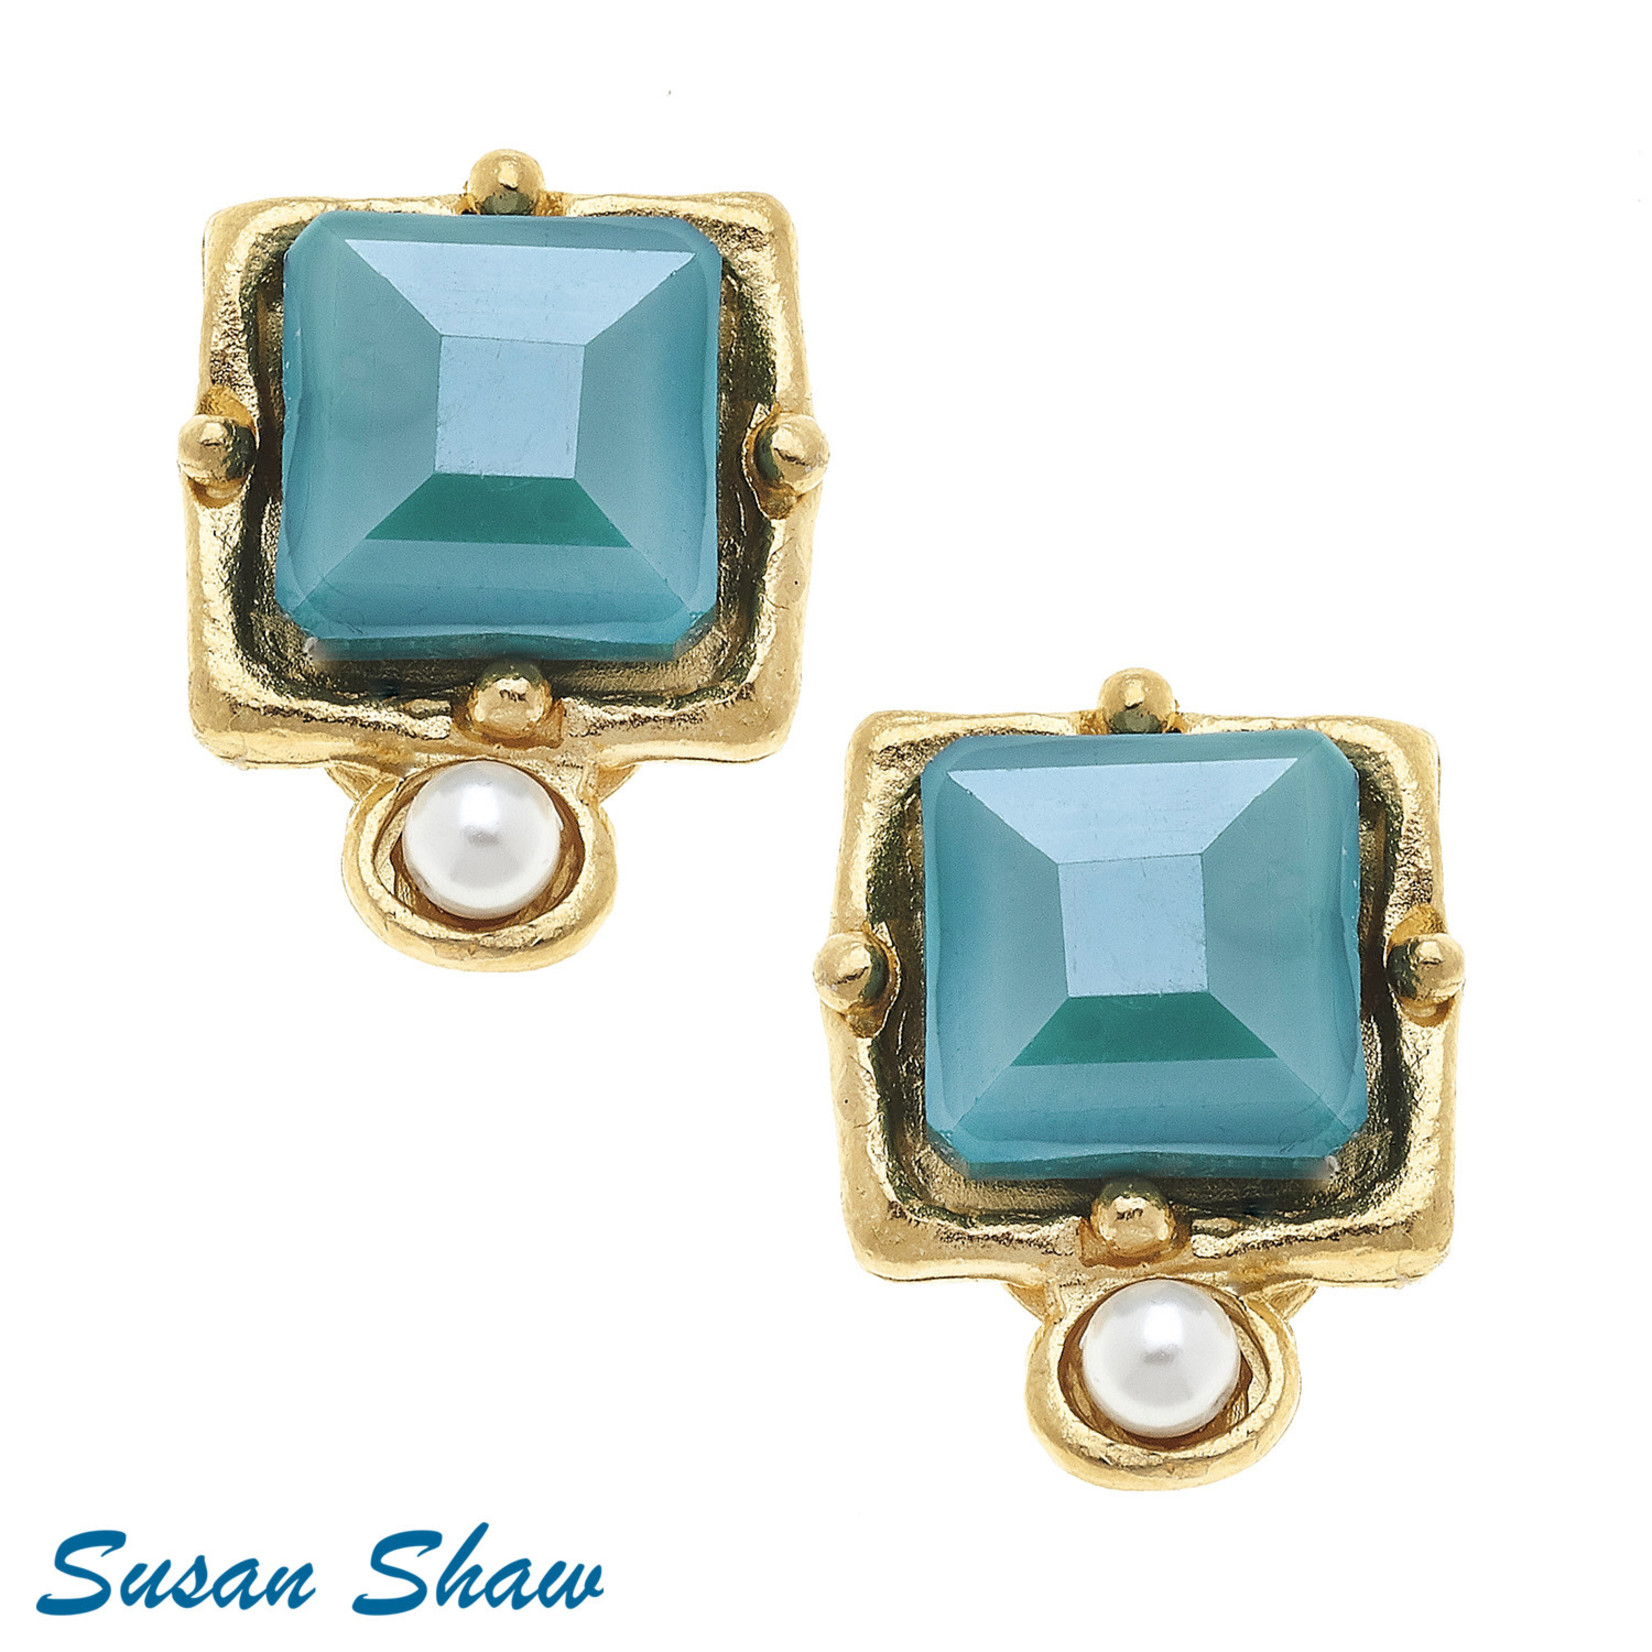 Susan Shaw SSH-1112T-Gold Freshwater Pearl & Teal Crystal Earrings